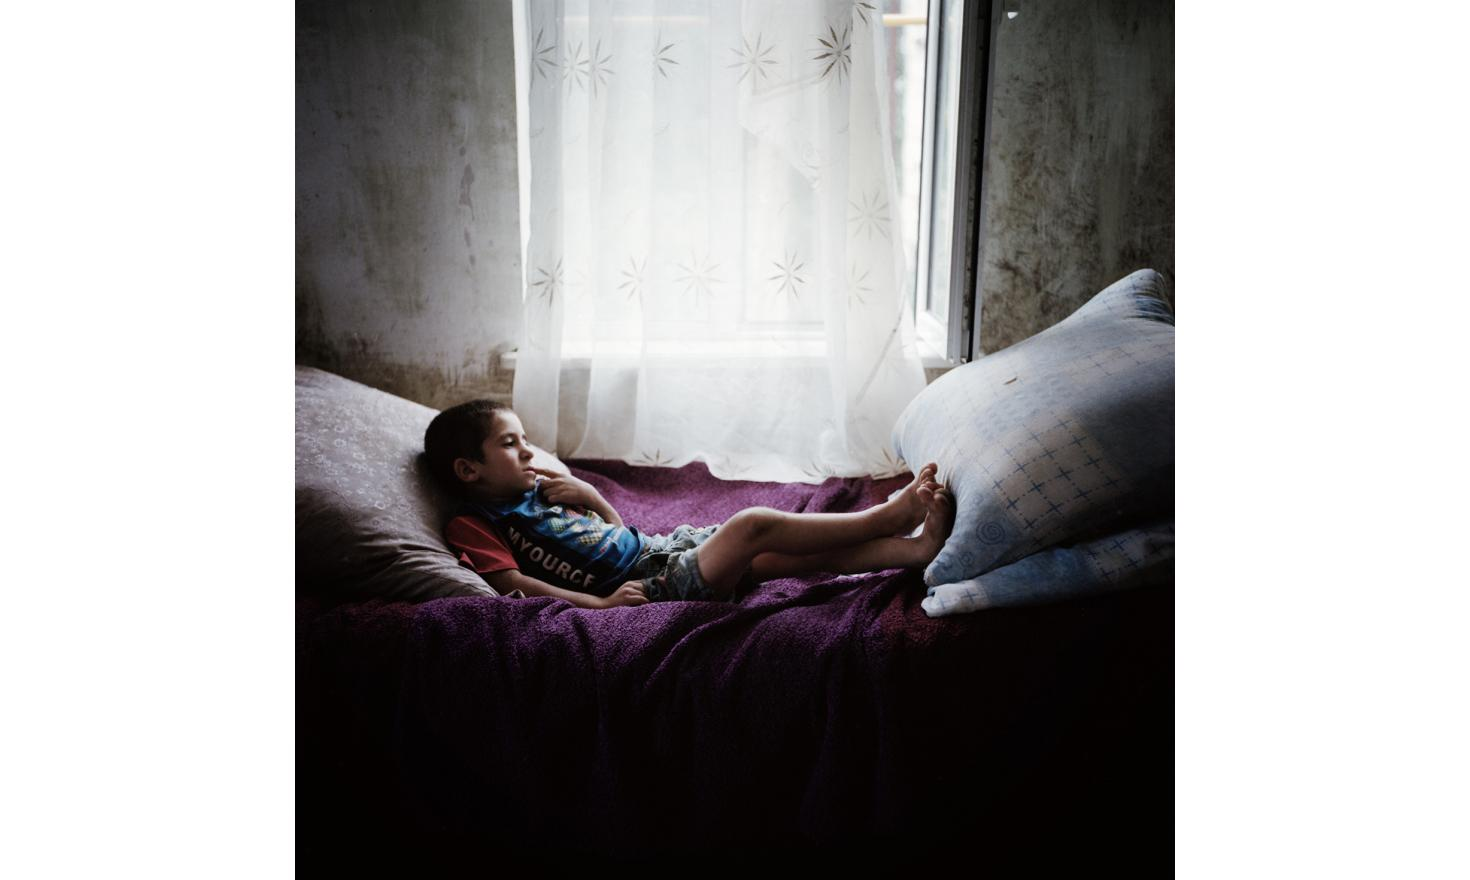 In Chouchi, a little boy from a large family in his bed, thoughtfully.